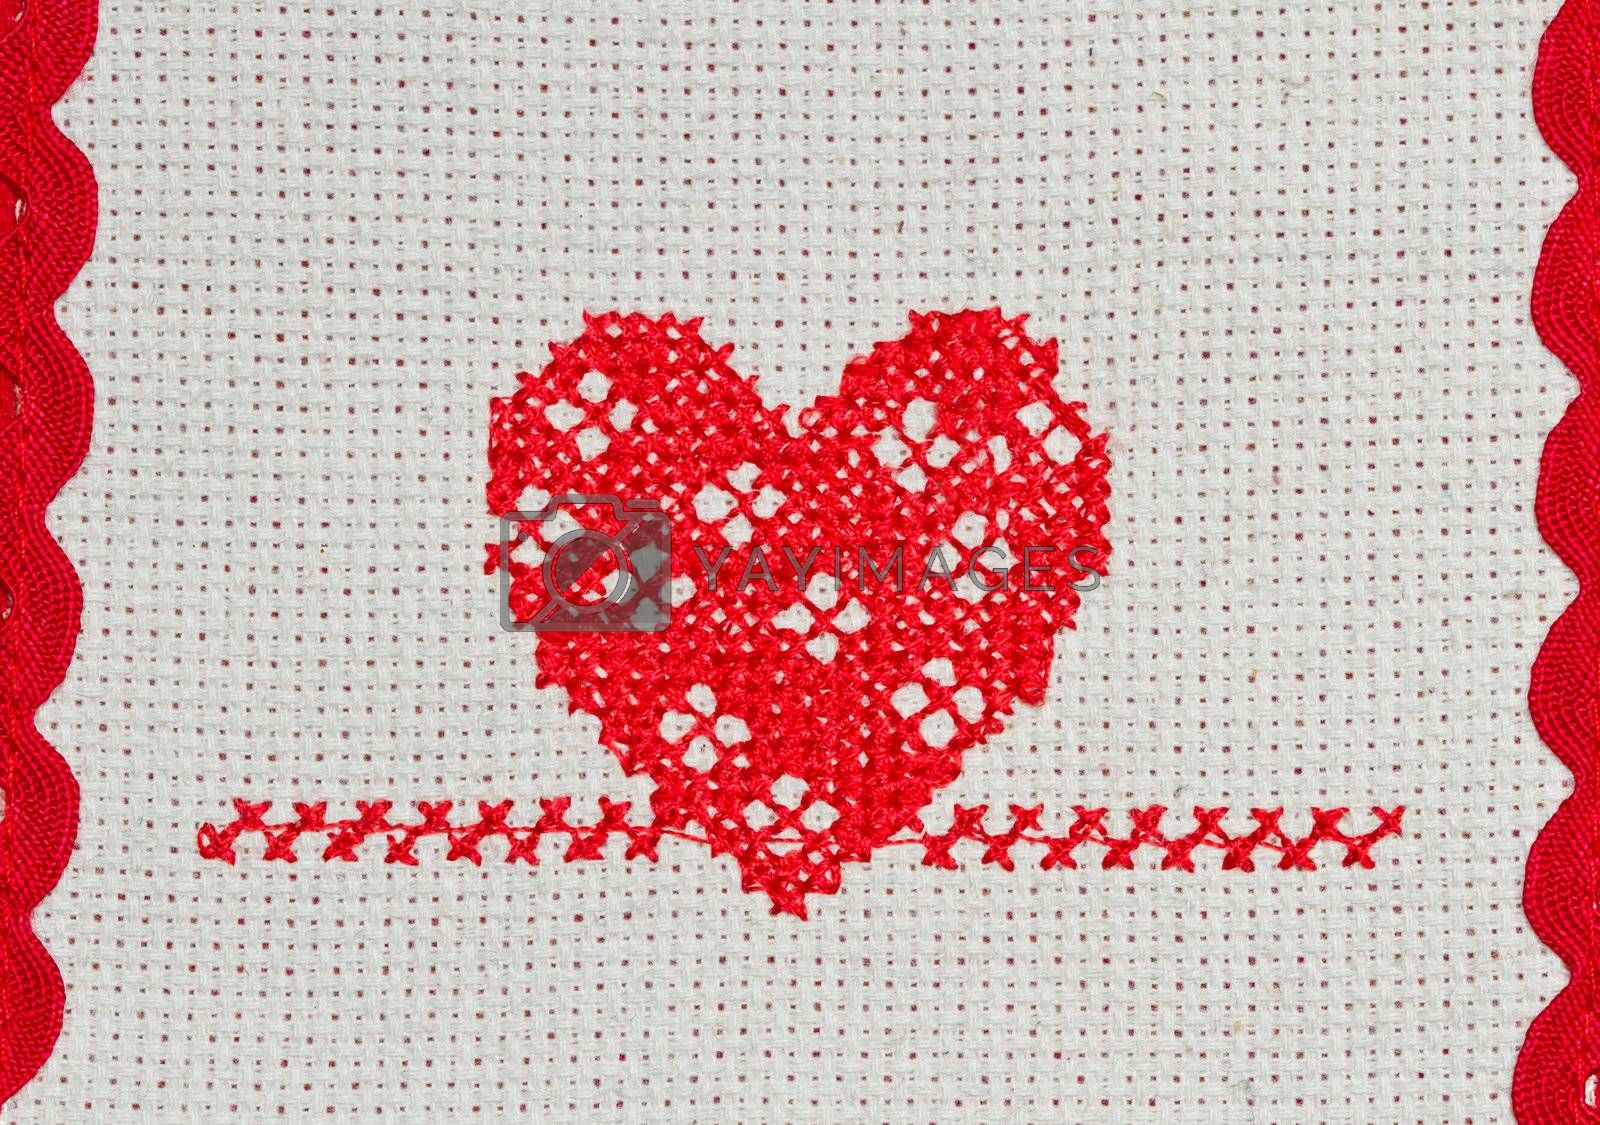 red heart embroidered in cross stitch on  canvas